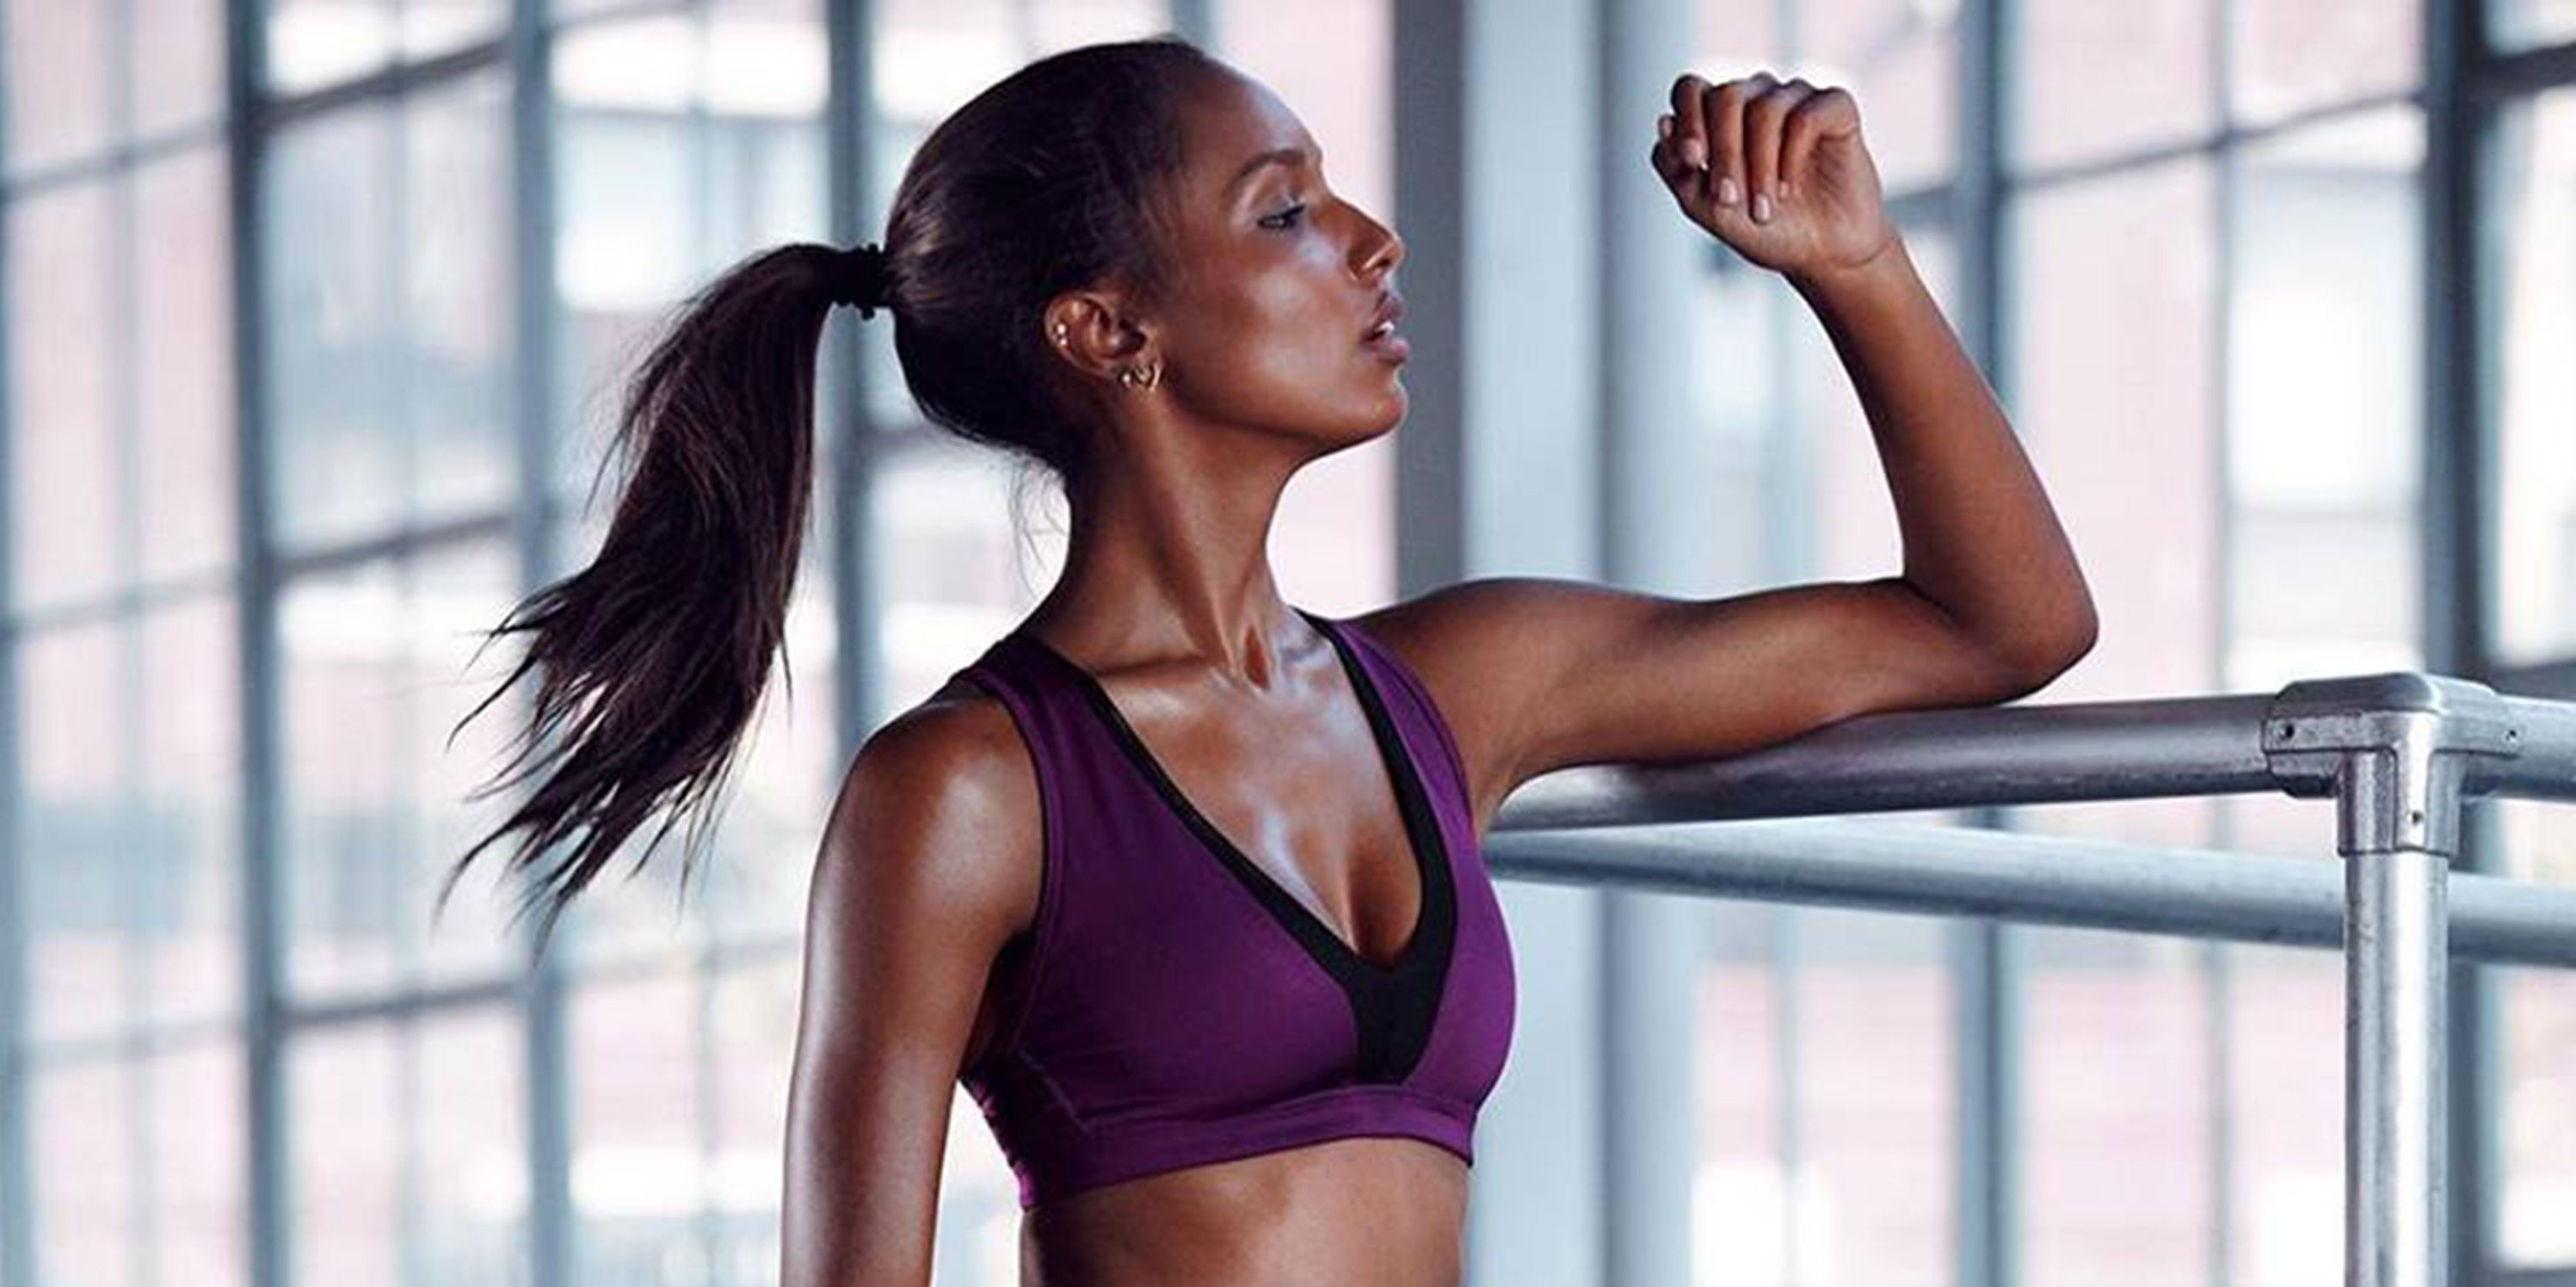 Gym hair - how to look after your hair